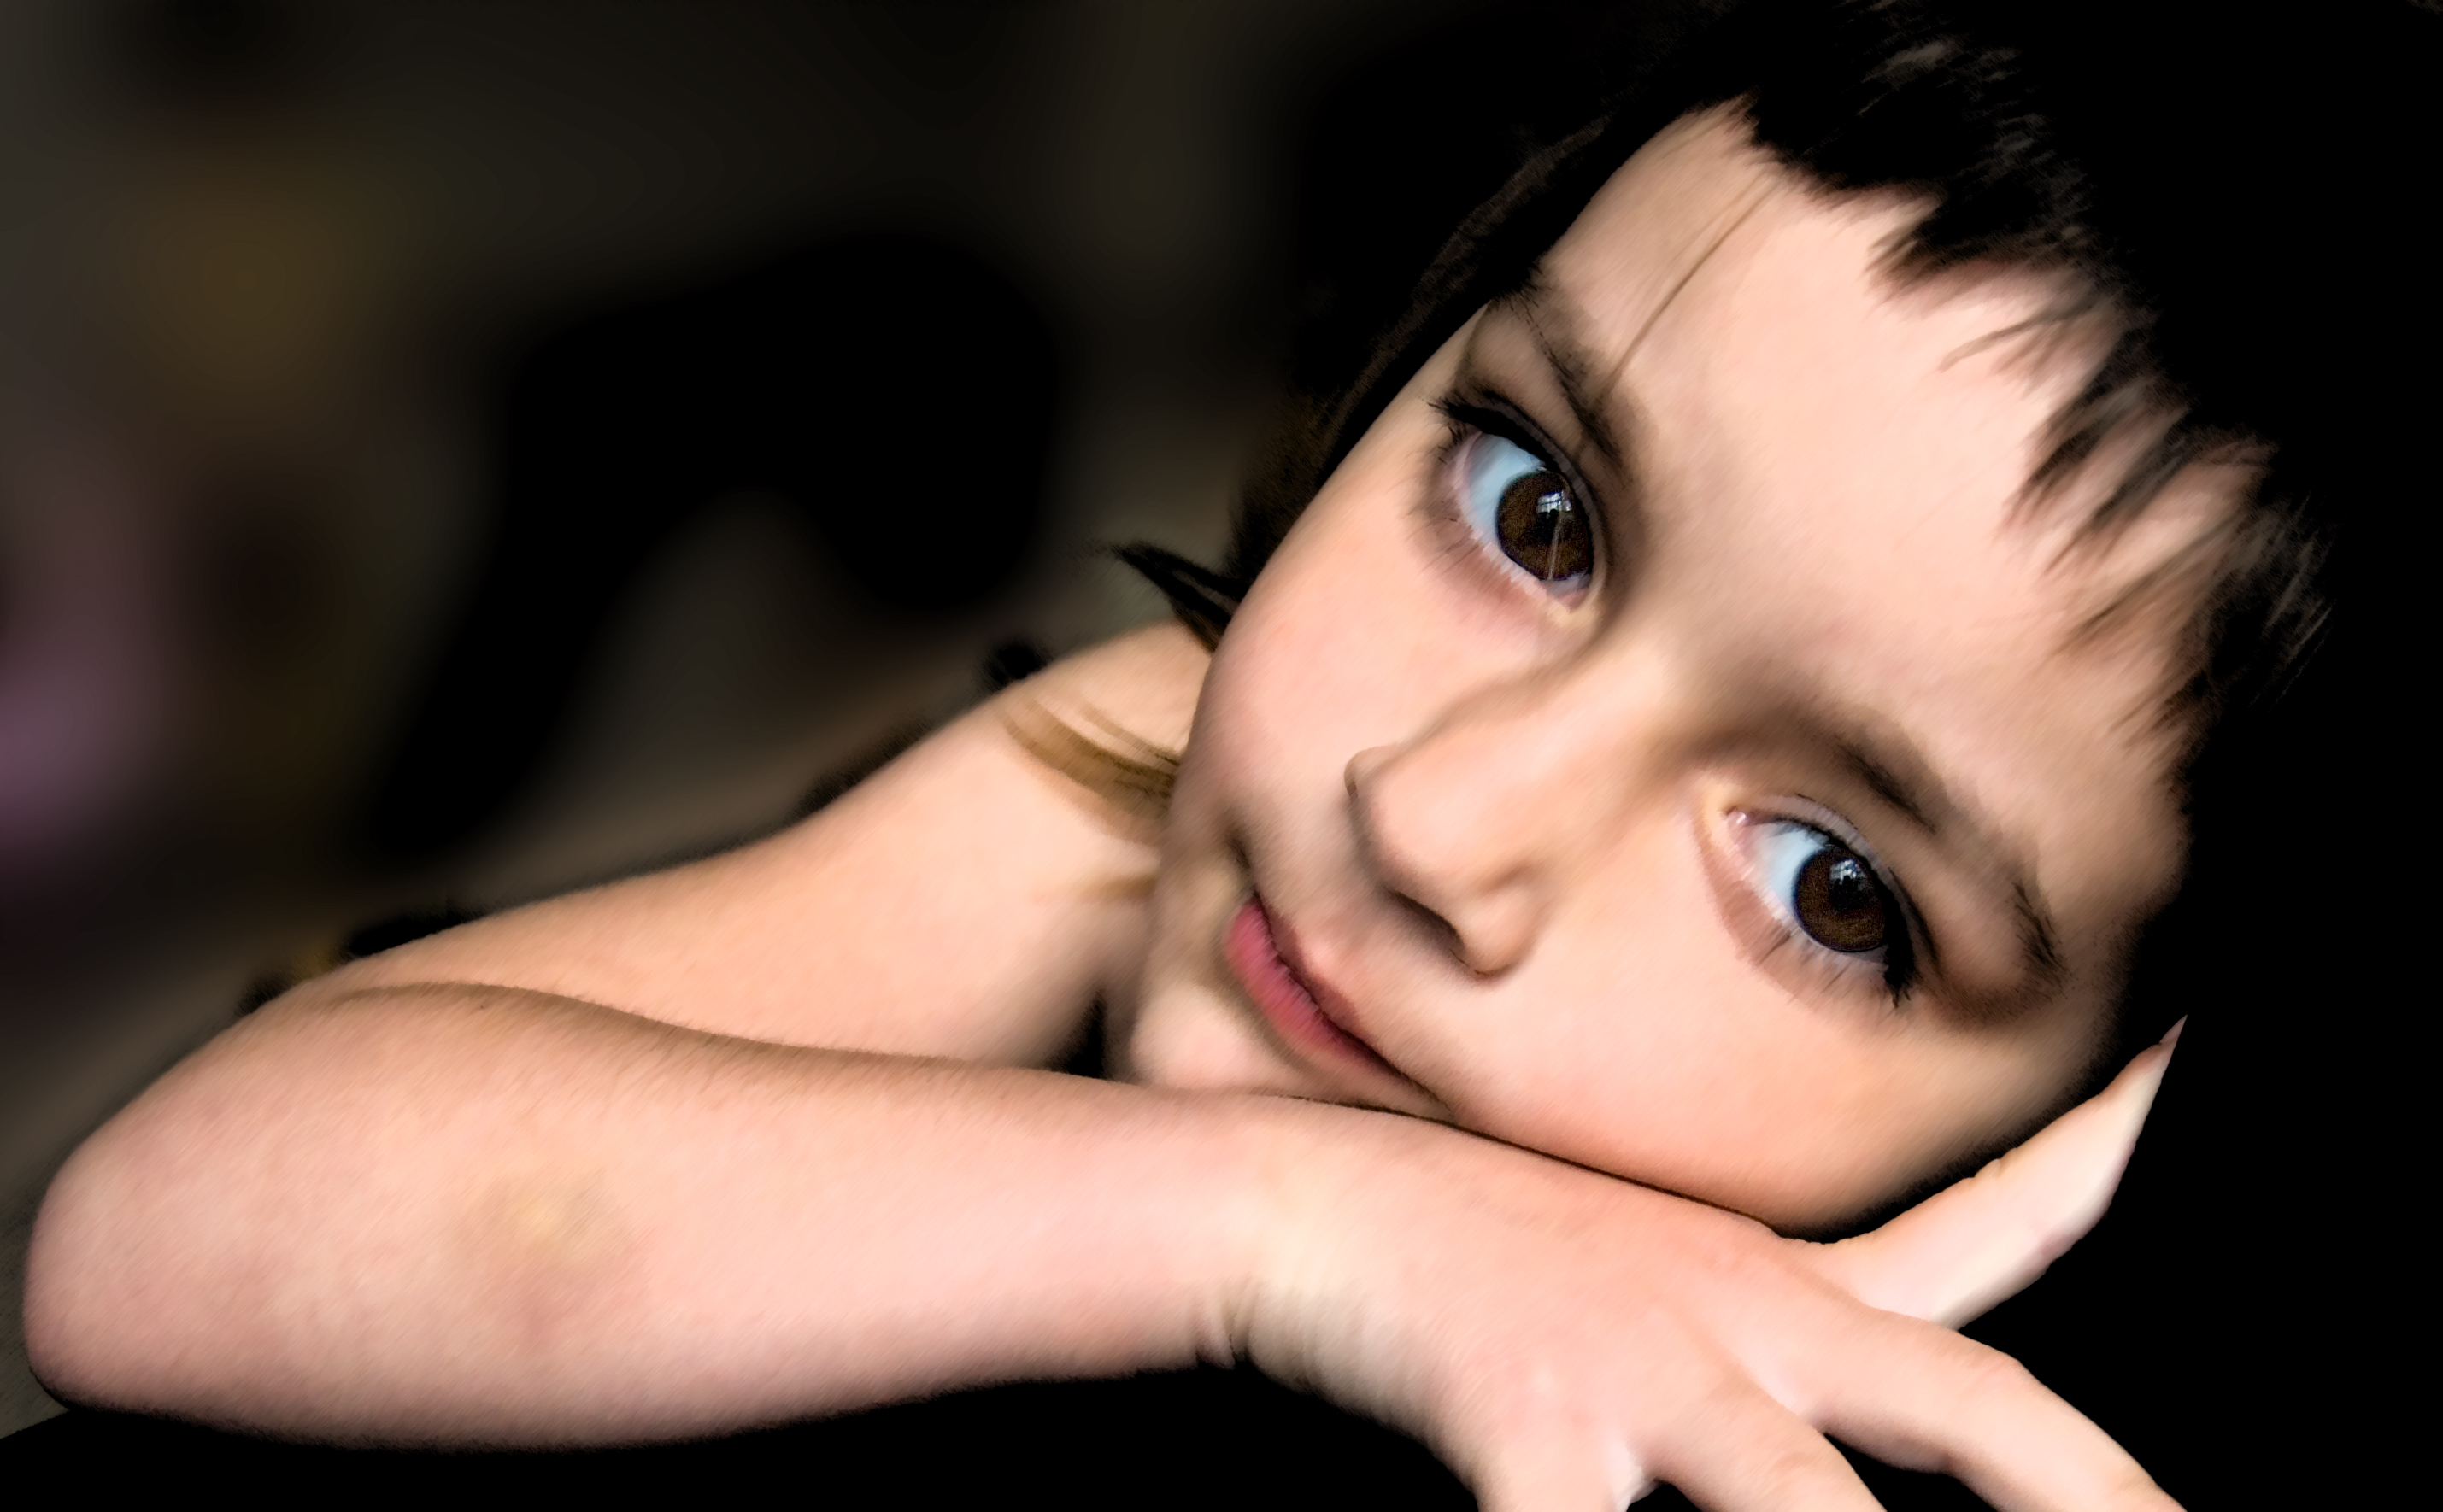 deep-in-thought-2-1311199.jpg